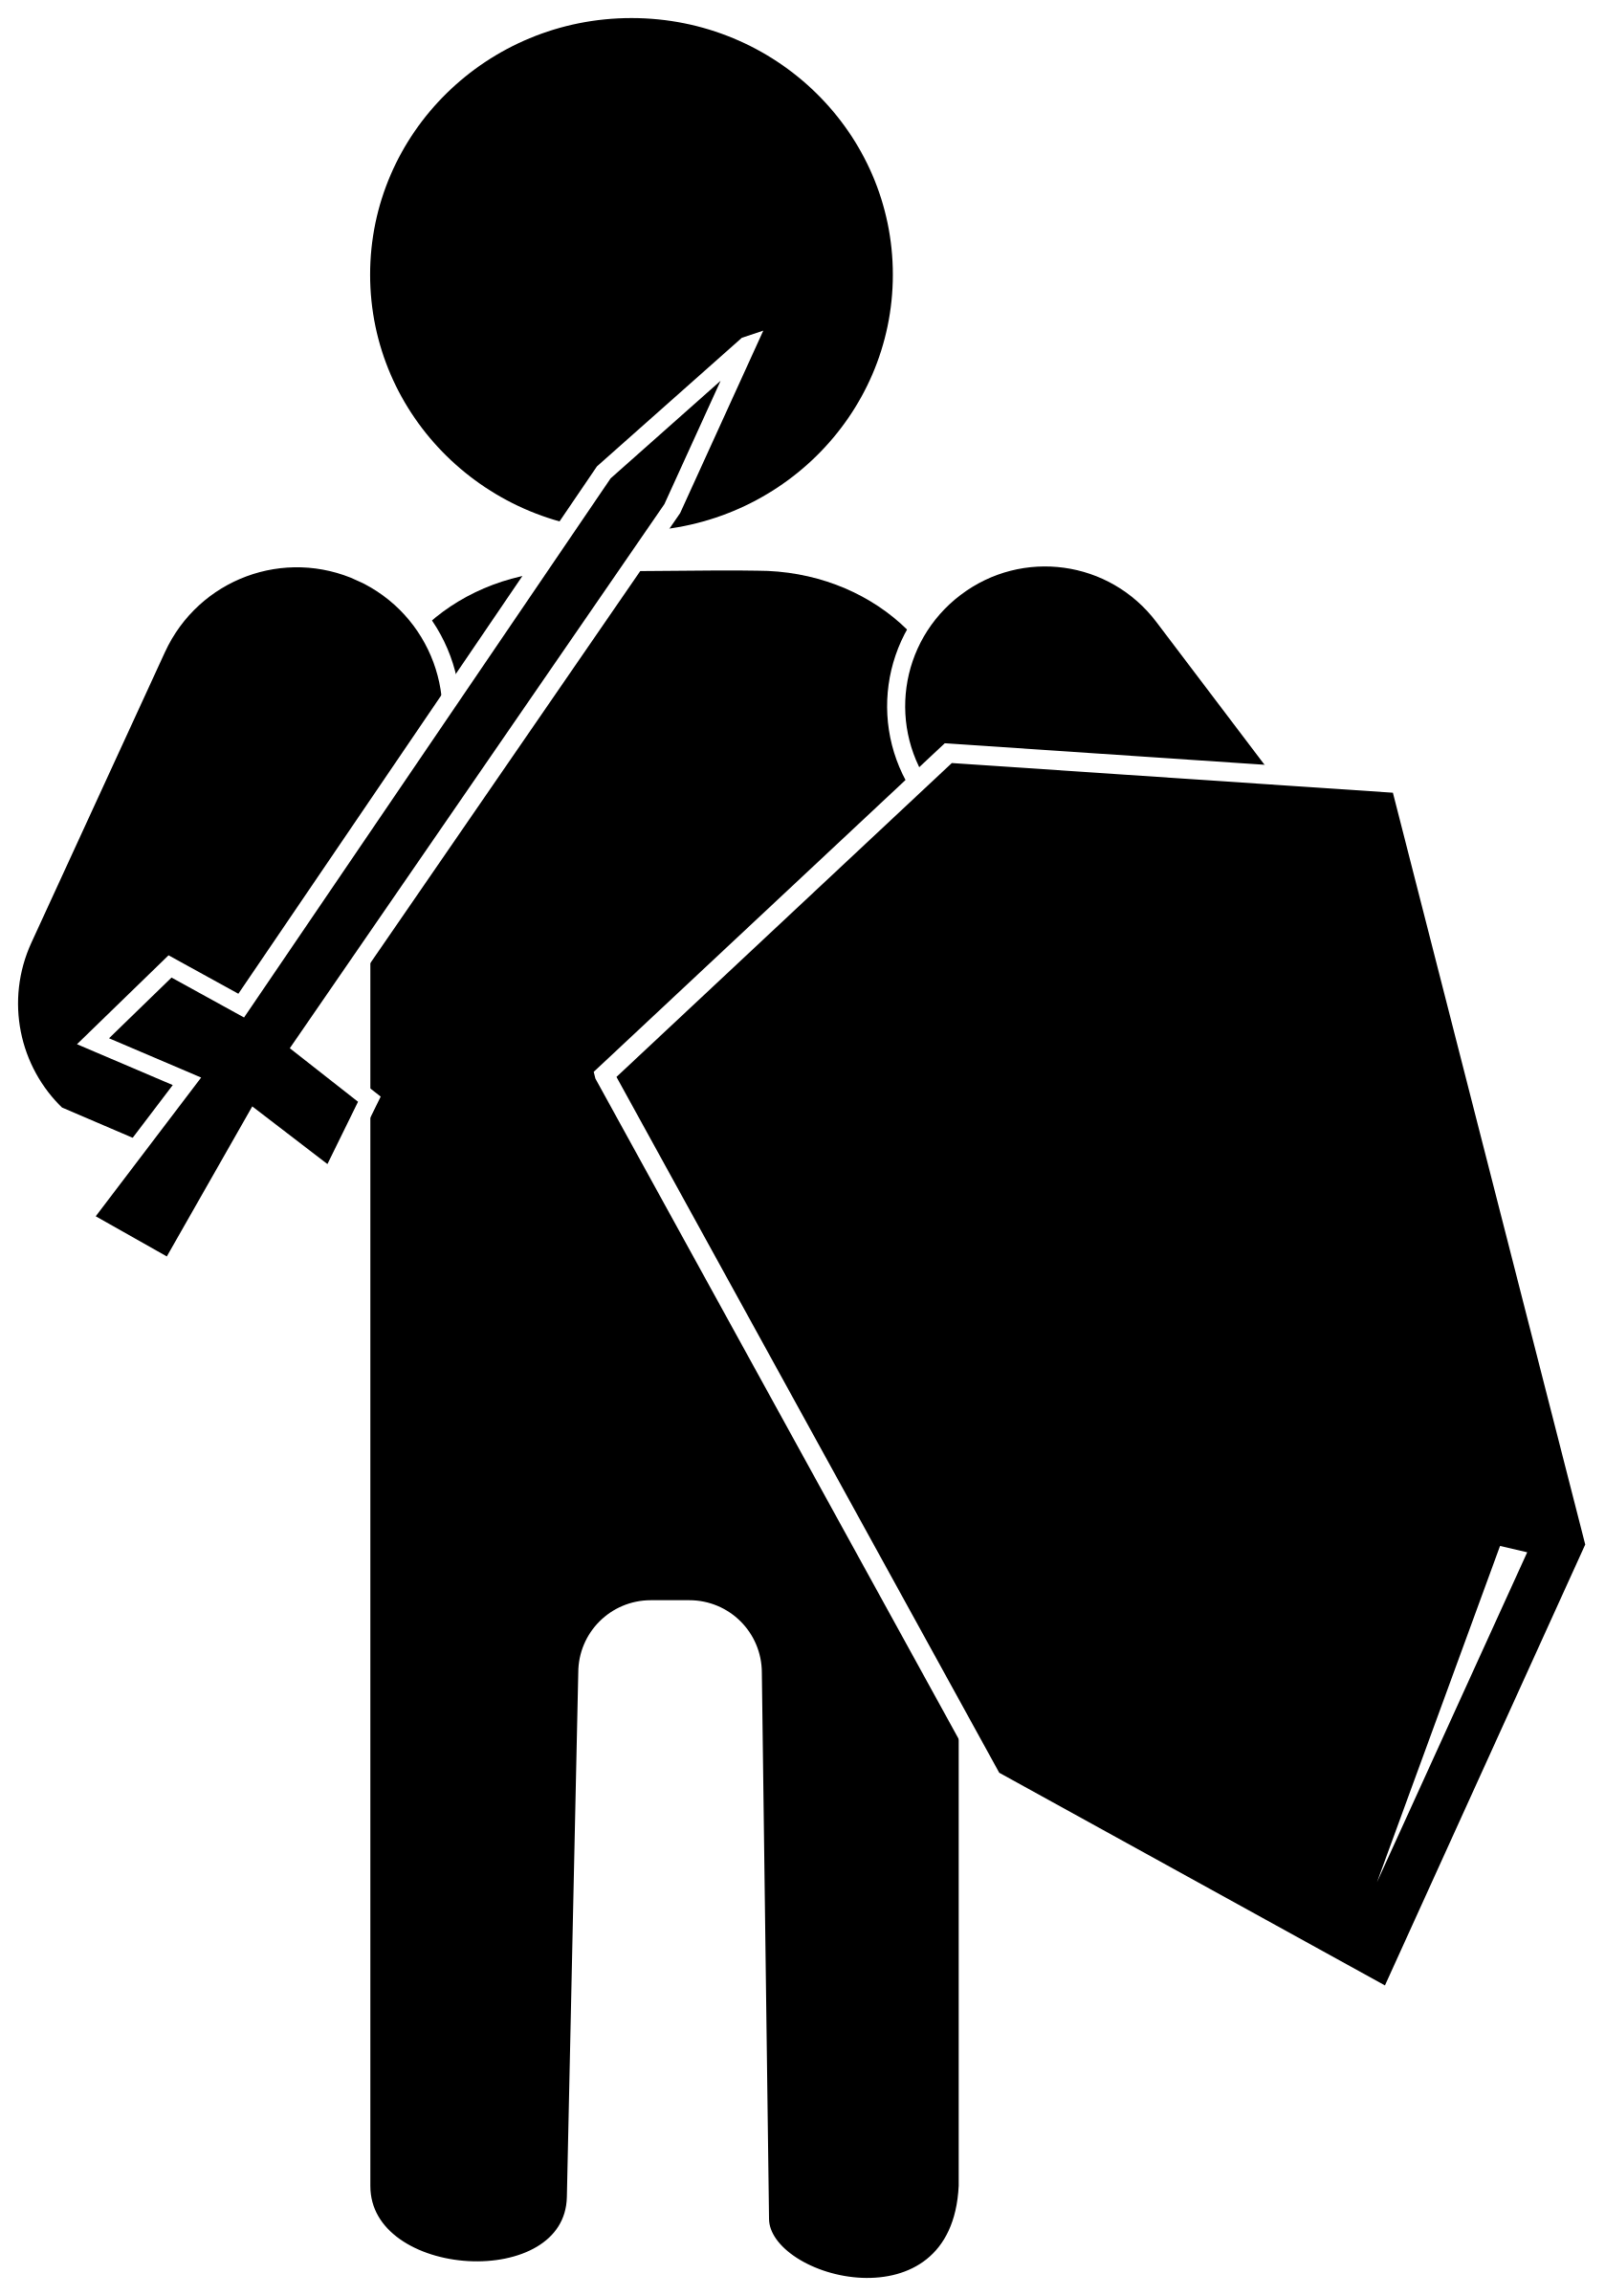 Soldier big image png. Clipart shield silhouette